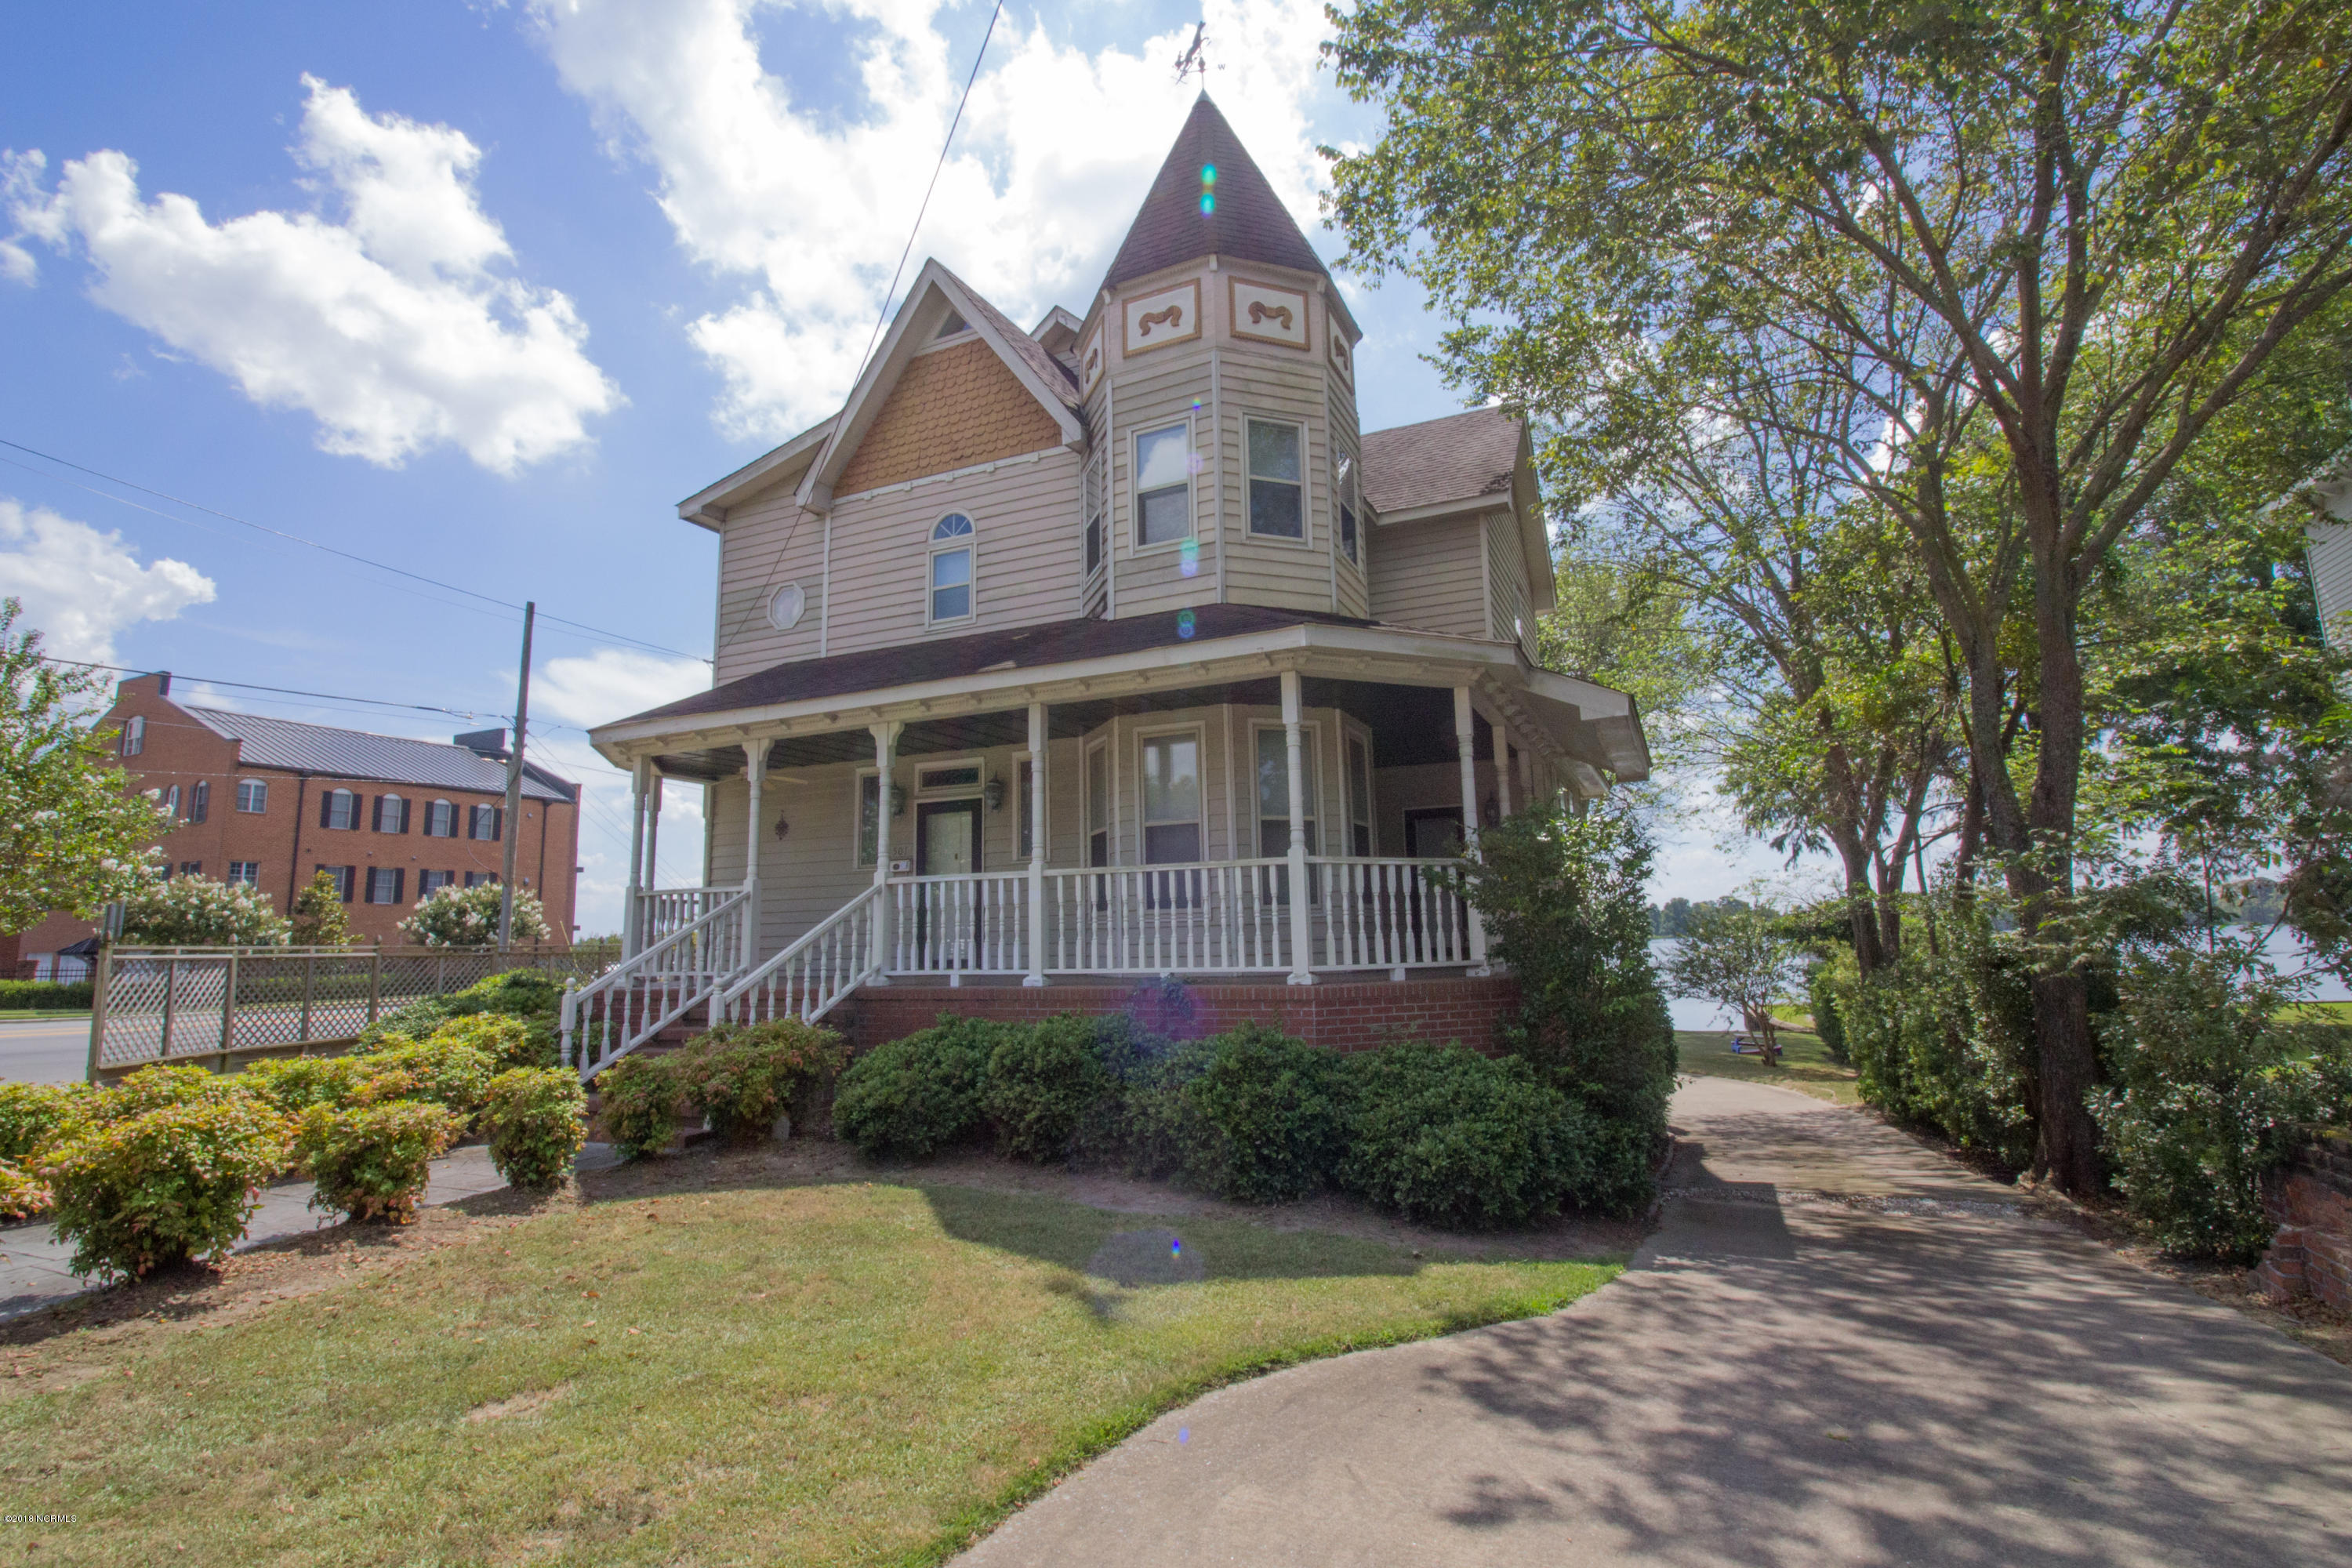 501 Main Street, Washington, North Carolina, 4 Bedrooms Bedrooms, 9 Rooms Rooms,3 BathroomsBathrooms,Single family residence,For sale,Main,100133880